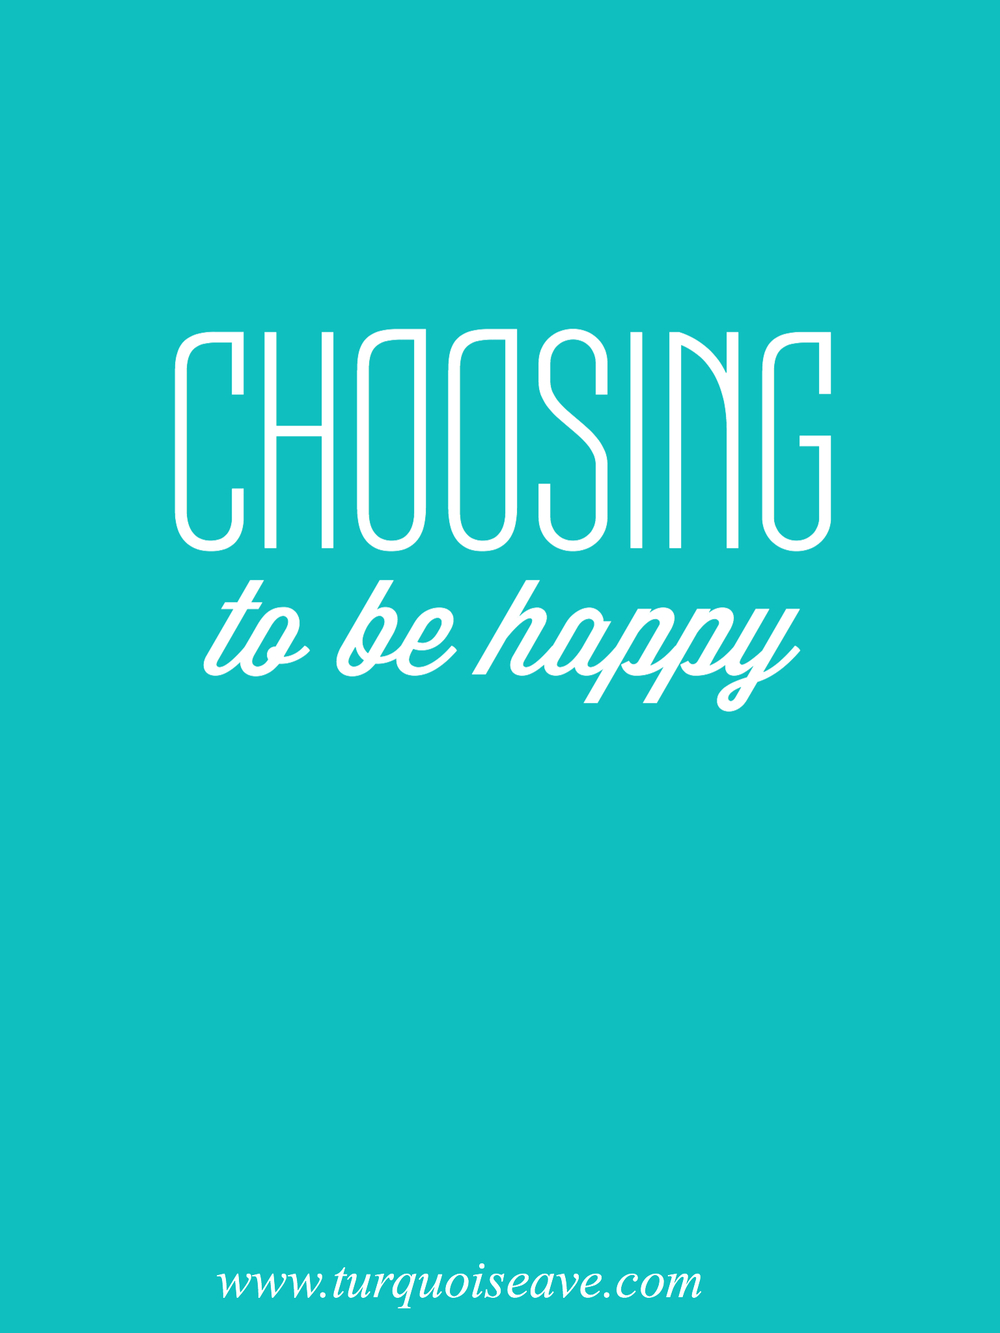 Pin this image! 5 Ways That Lead to Choosing Happiness in your every day life!